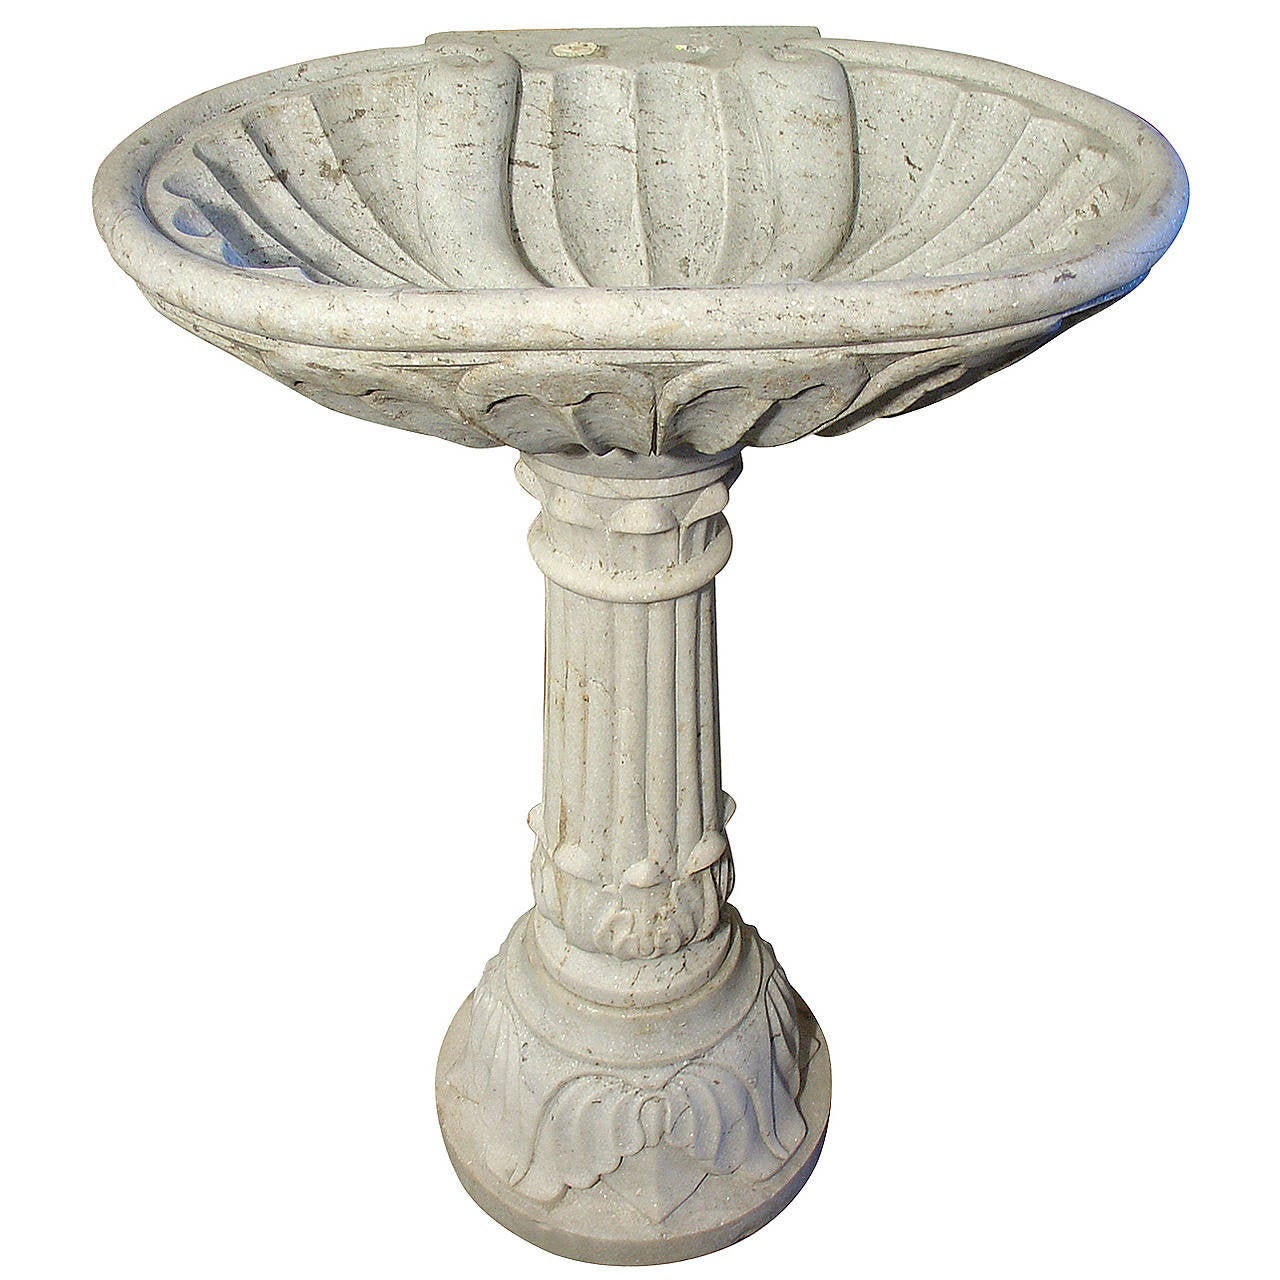 Stone Pedestal Sink : Antique Marble Pedestal Sink from France, Circa 1900 at 1stdibs